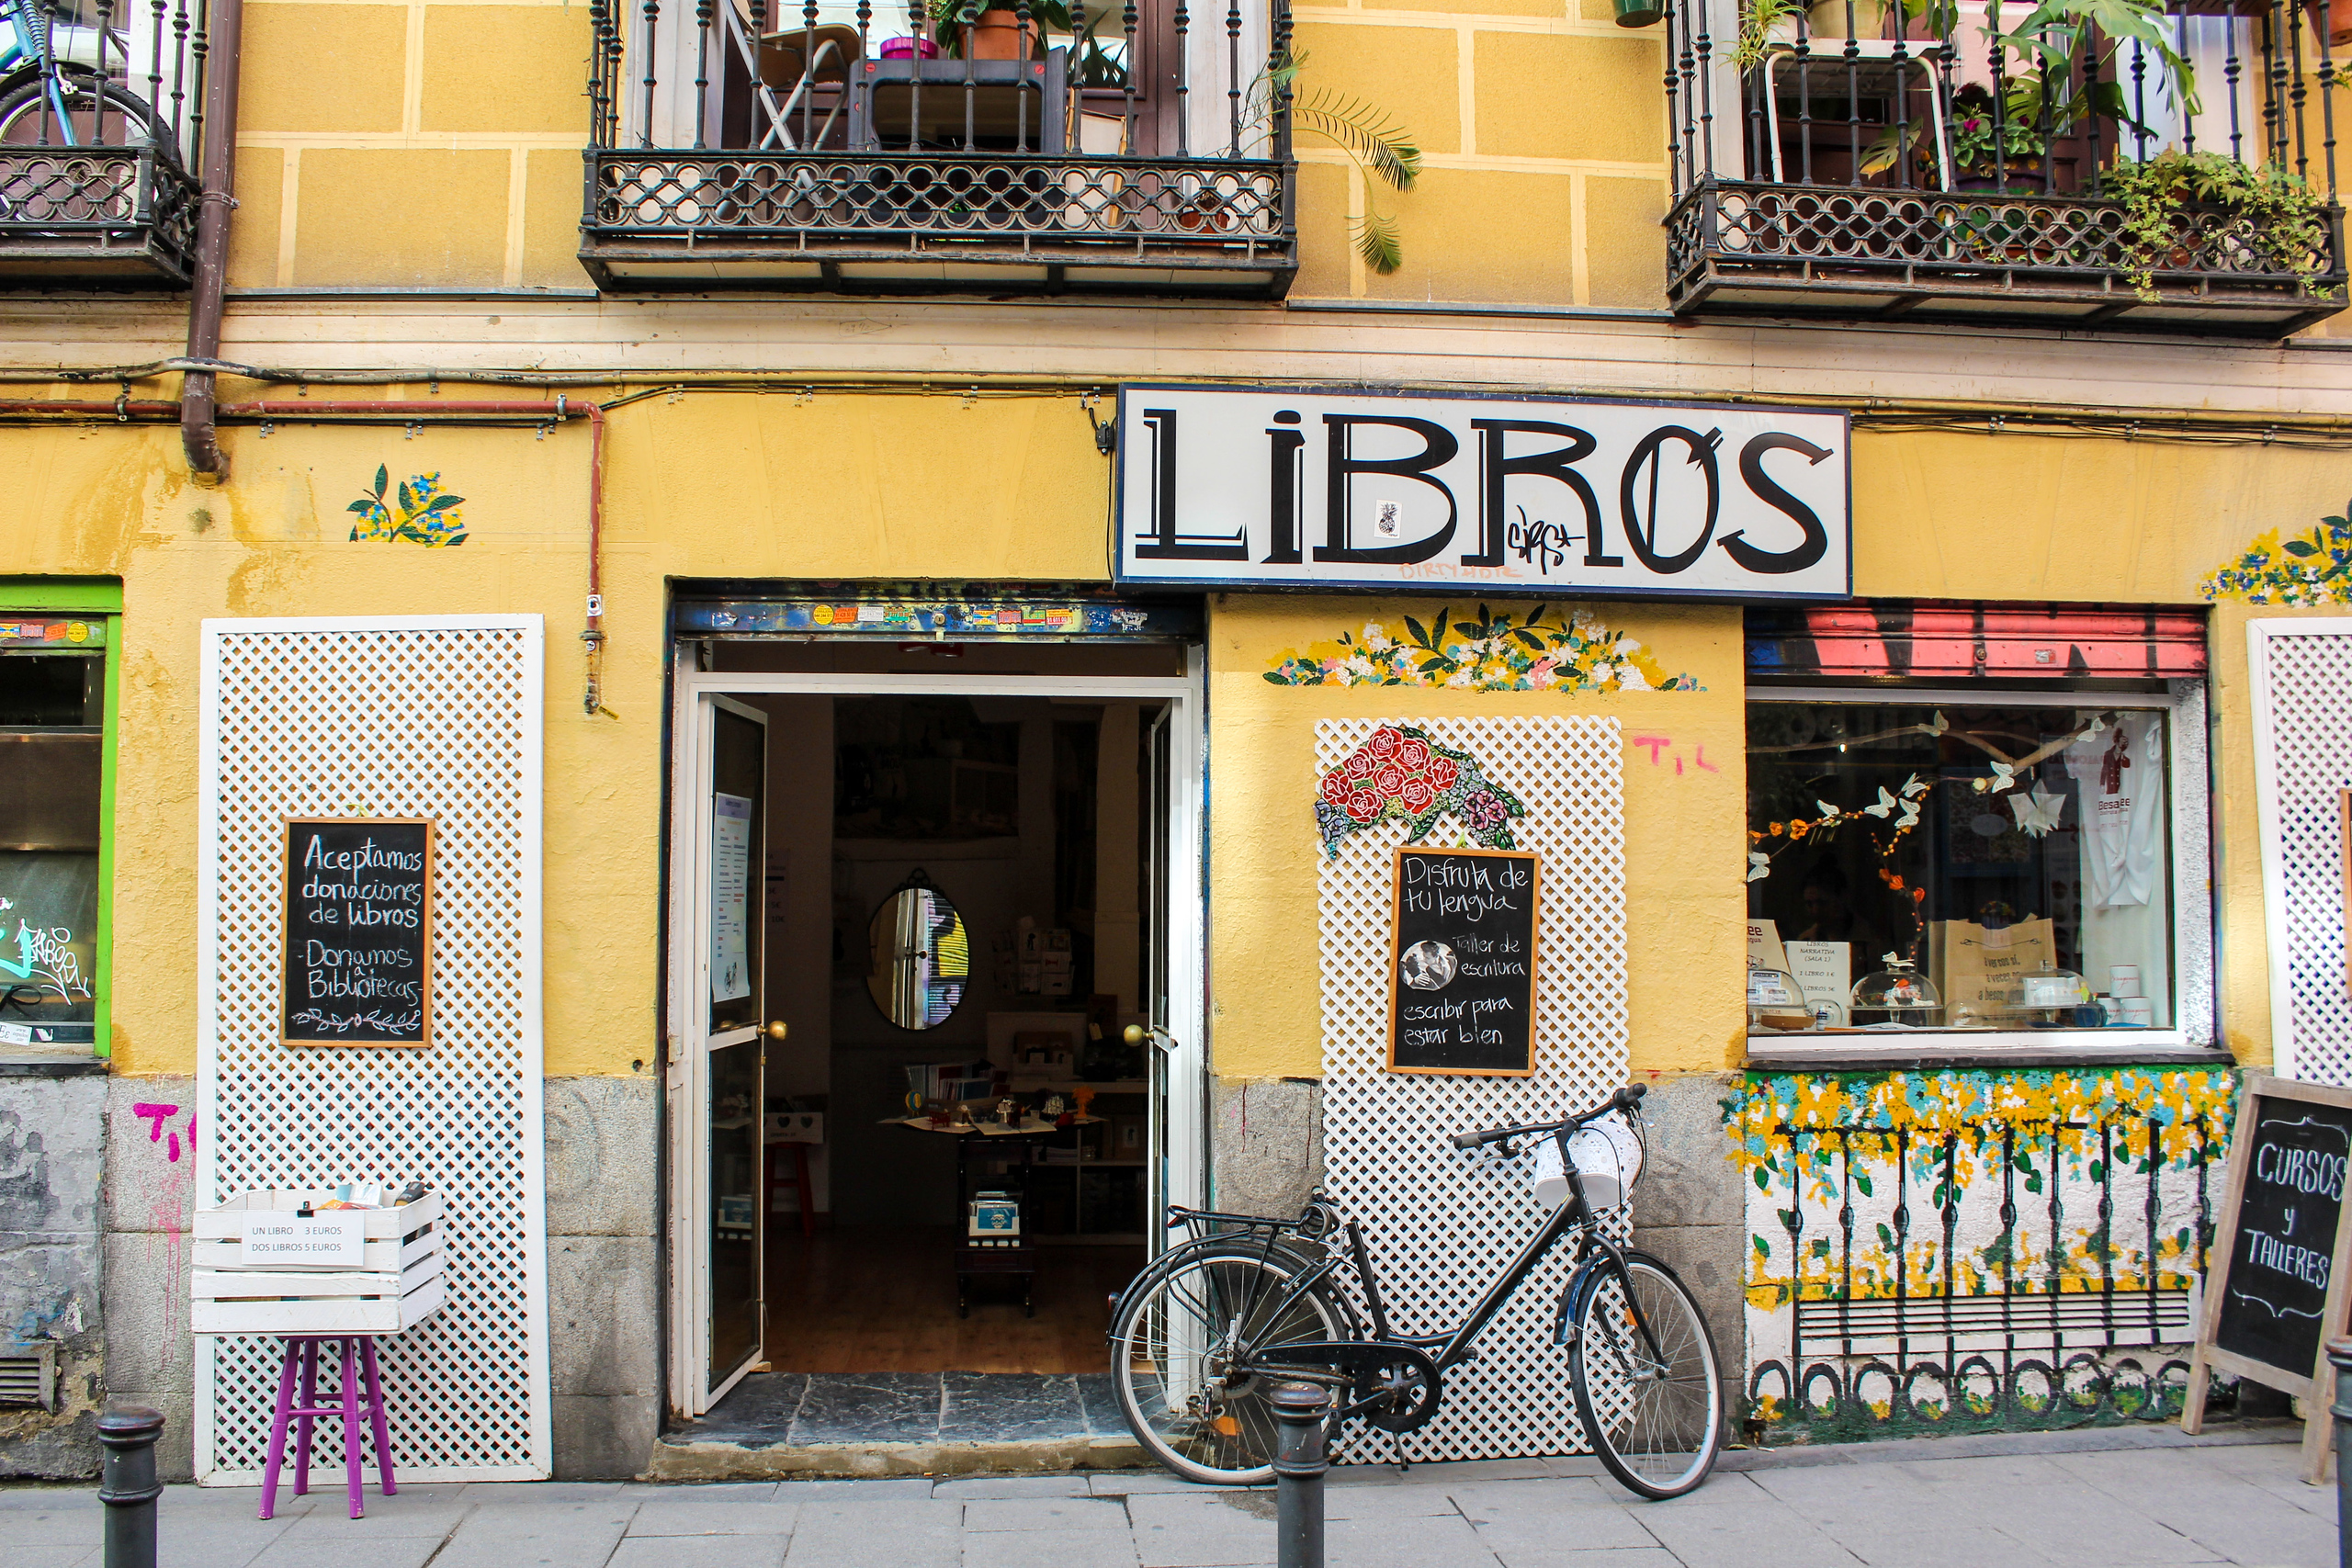 healing travel in spain is wonderful as you stumble upon bookstores